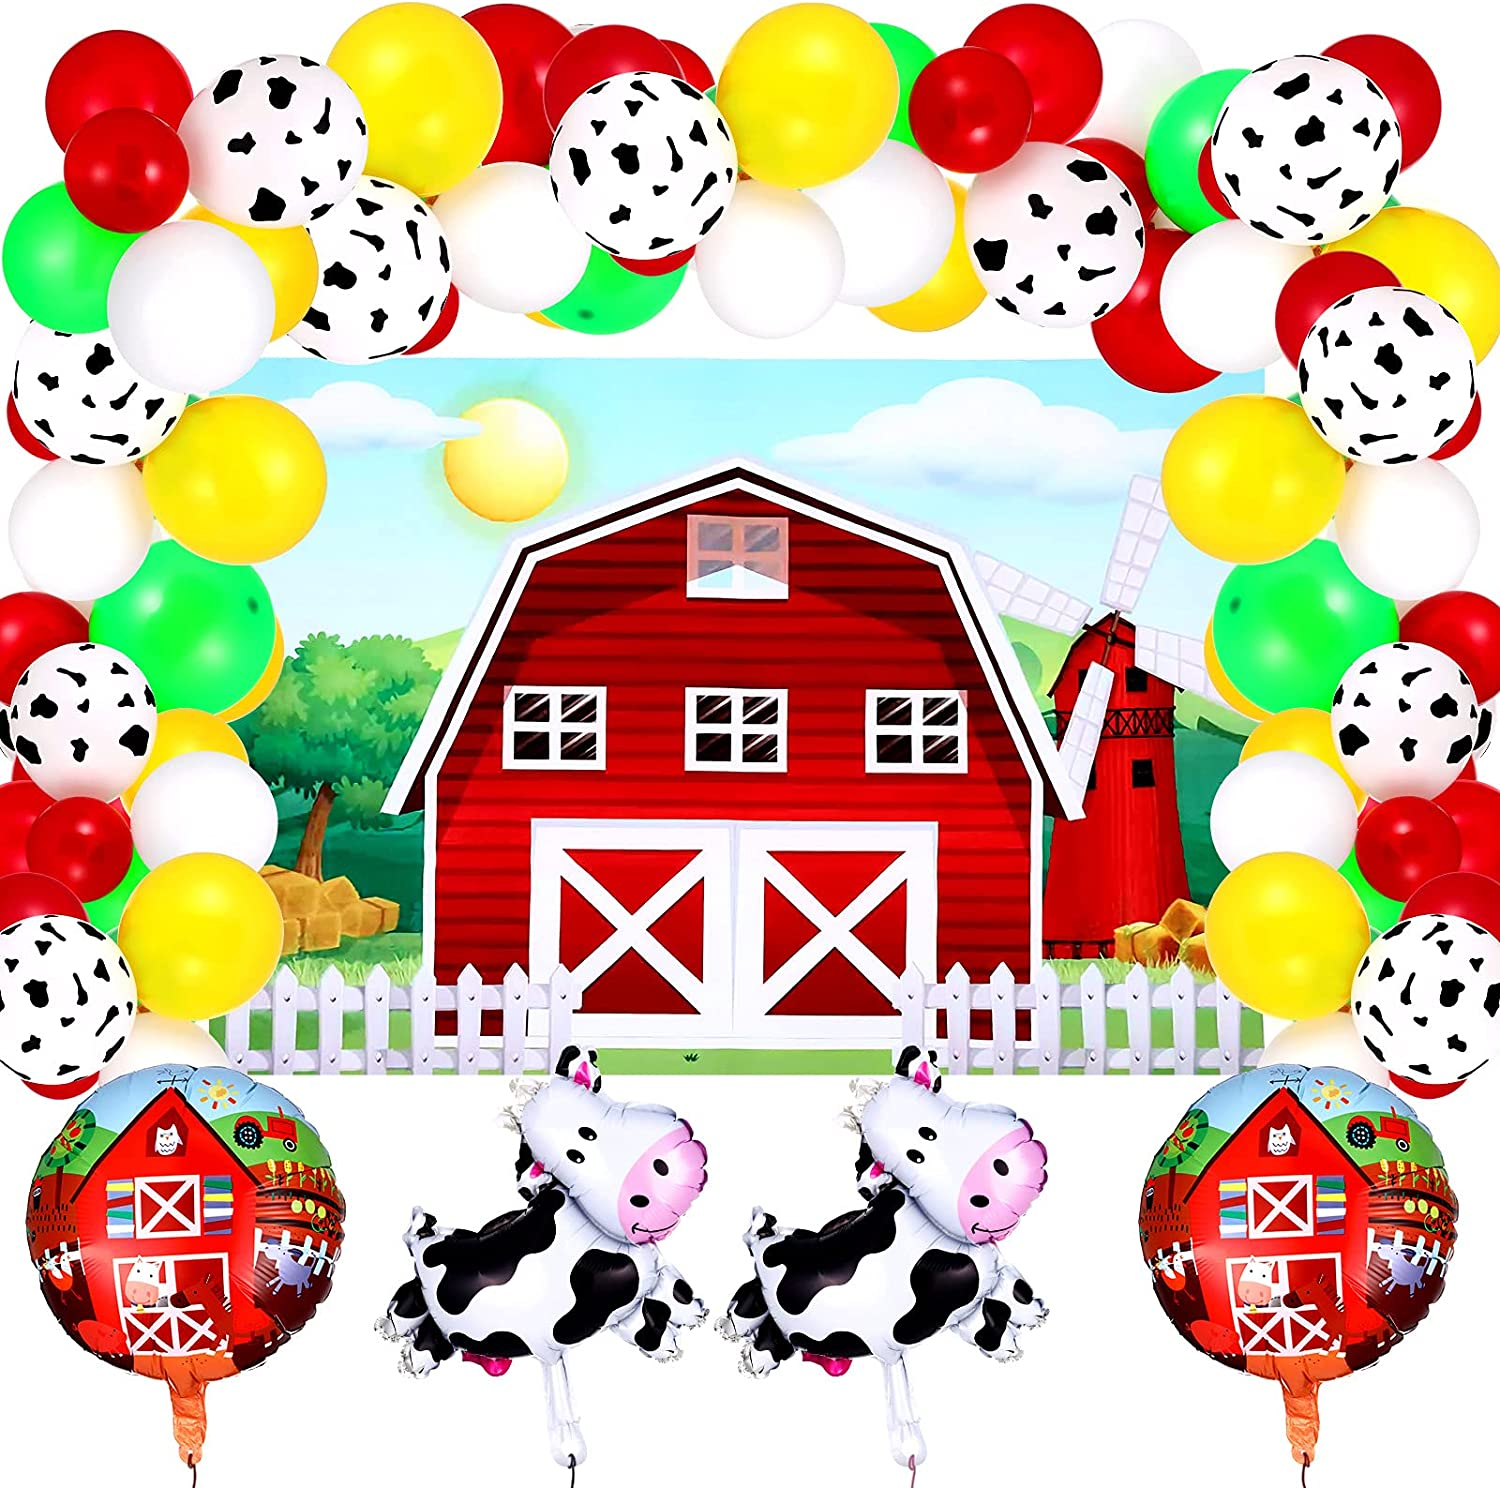 Farm Animals Theme Party Decorations Includes Cartoon Red Farm Animals Party Backdrop and Cow Foil Balloon Colorful Latex Balloon Red Farm Foil Balloon for Birthday Party Baby Shower